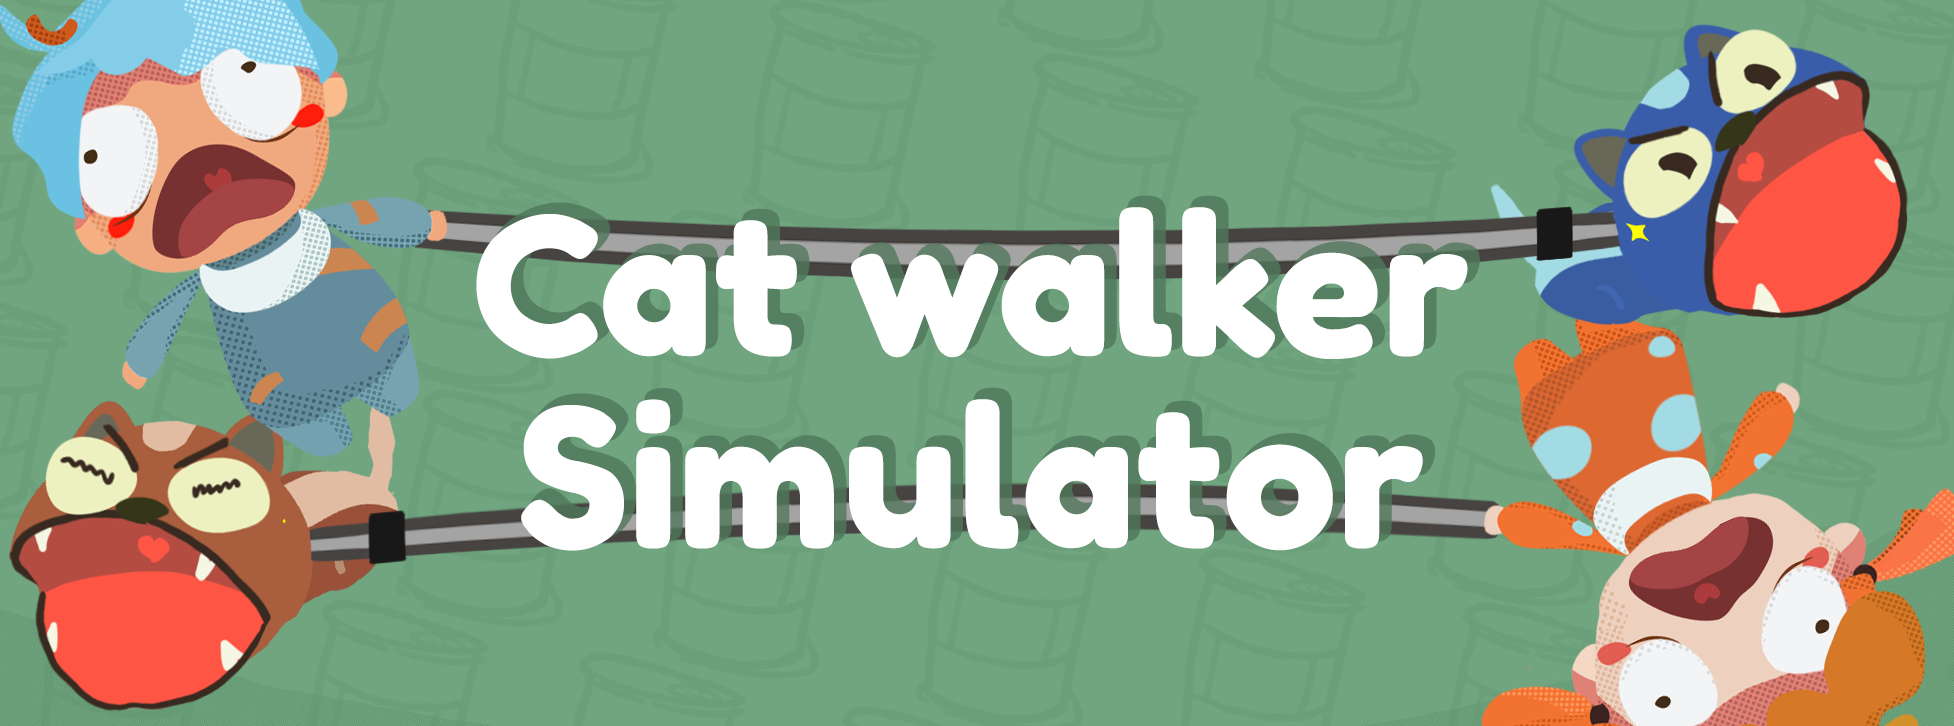 Cat Walker Simulator